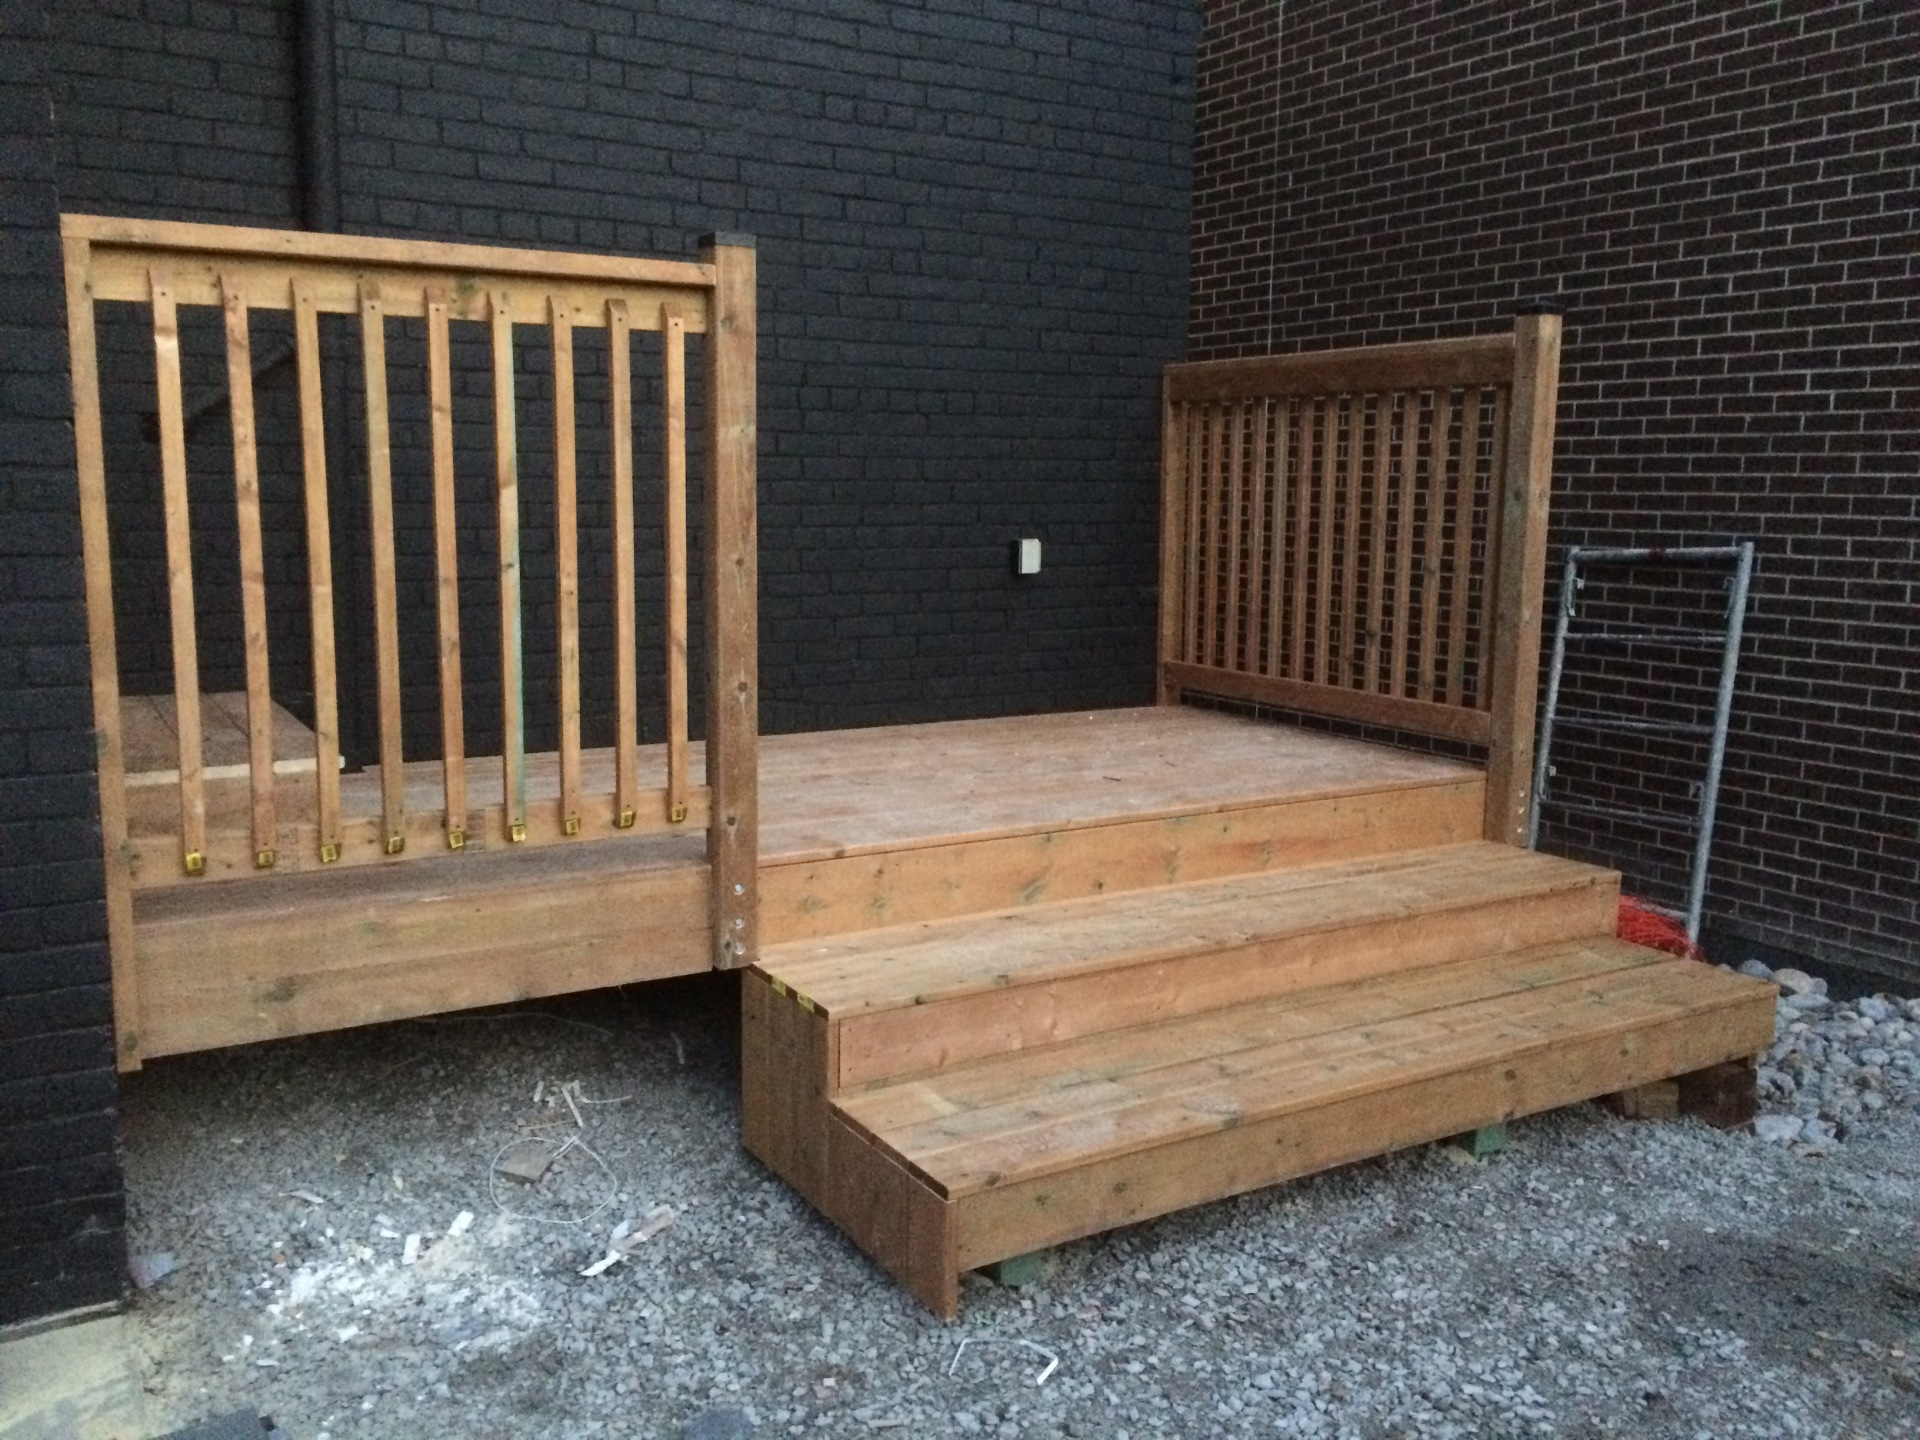 12x5 foot pressure treated